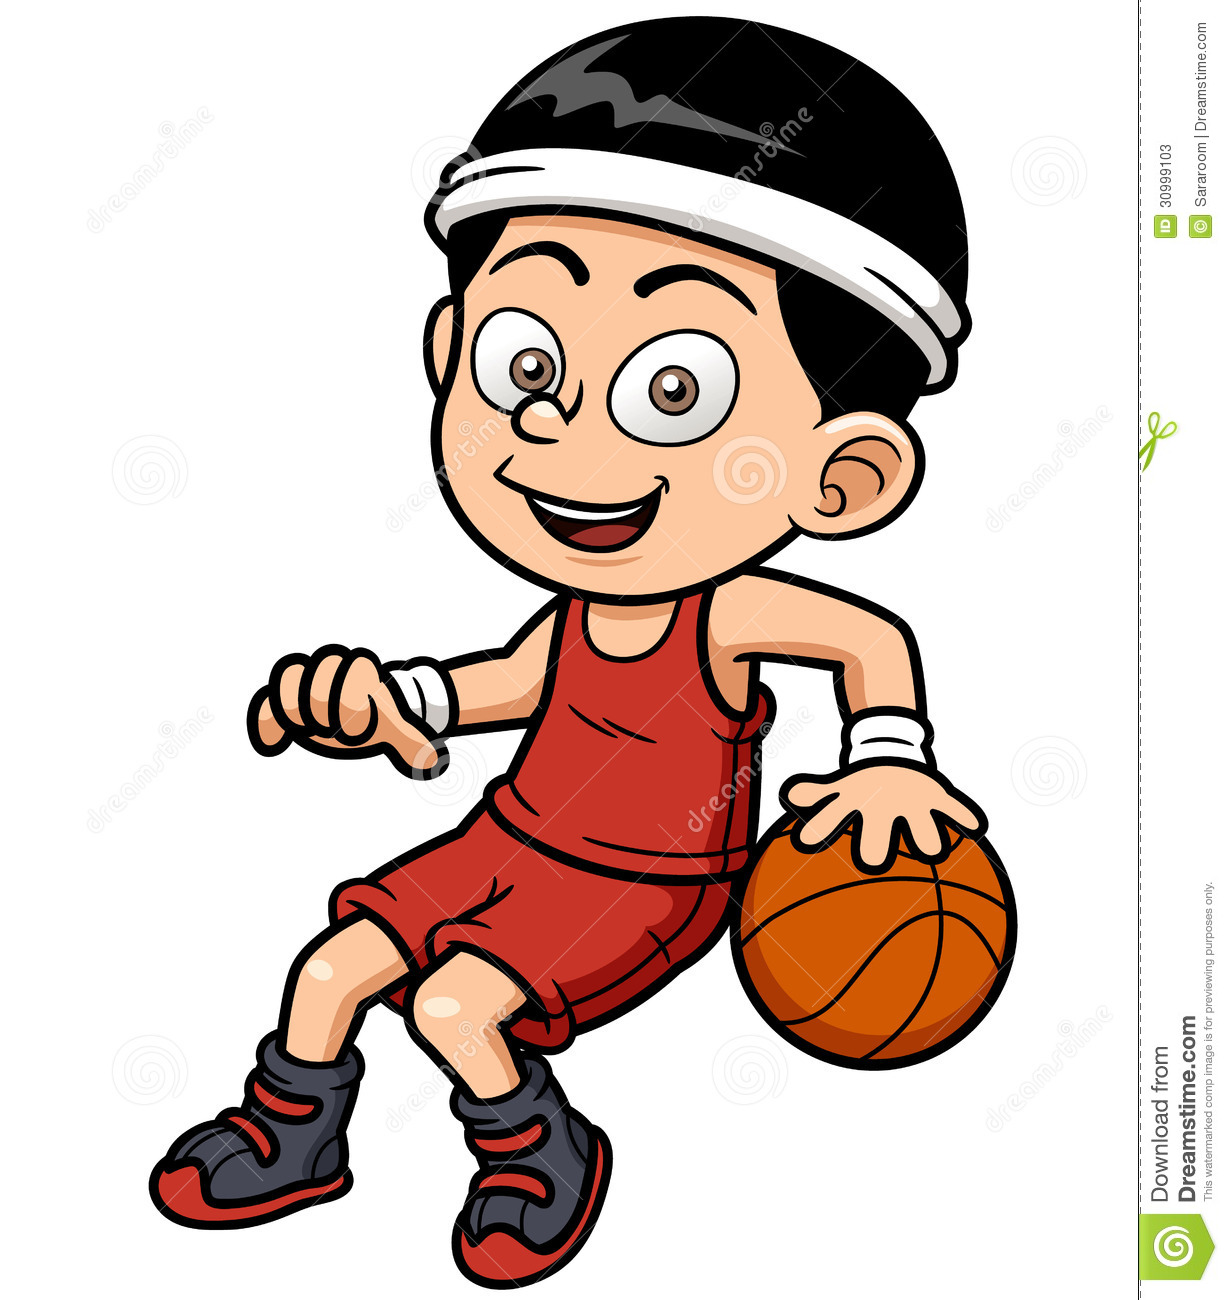 Playing Basketball CartoonBasketball Cartoon